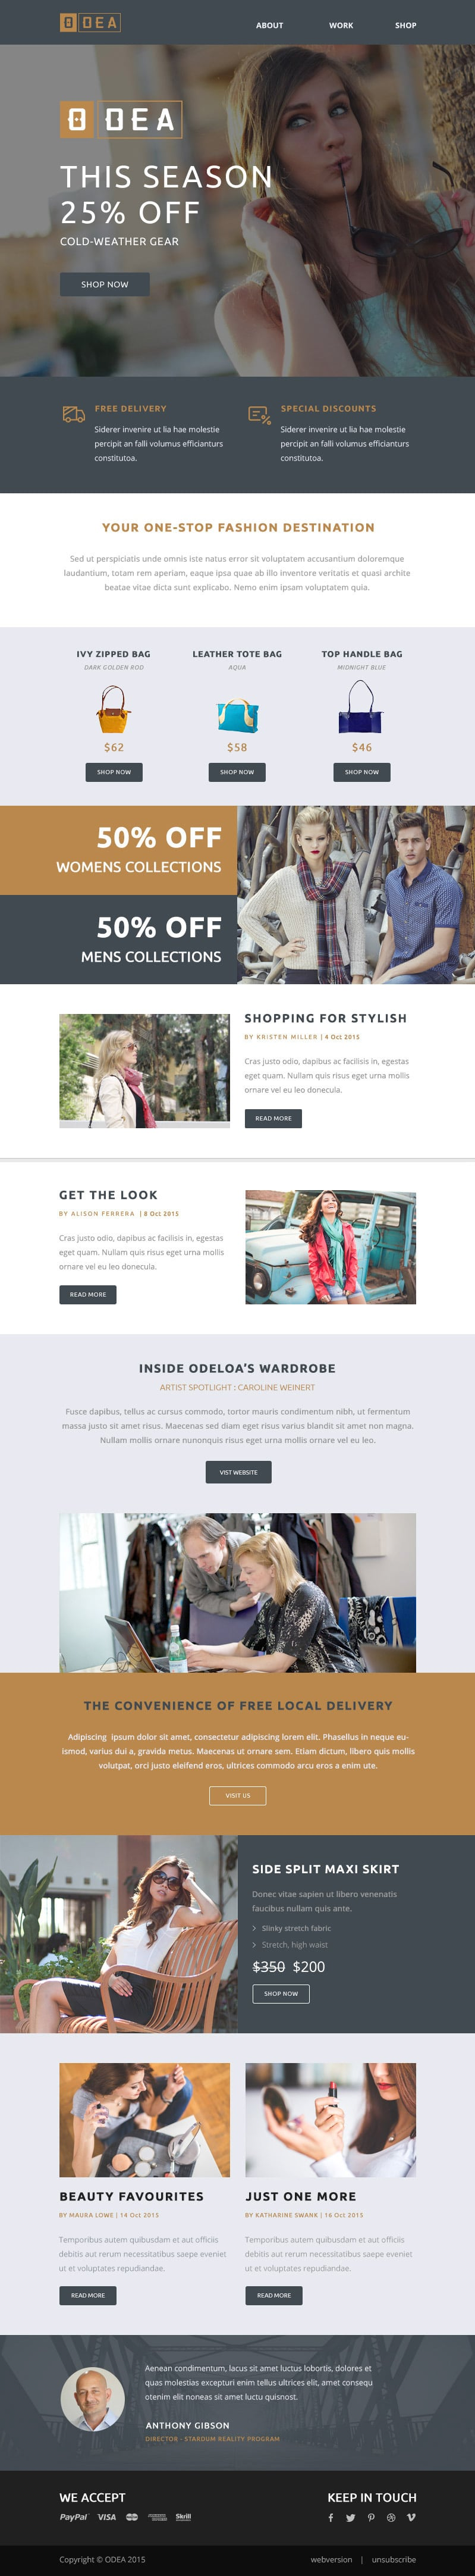 ODEA Free Email Newsletter Template PSD